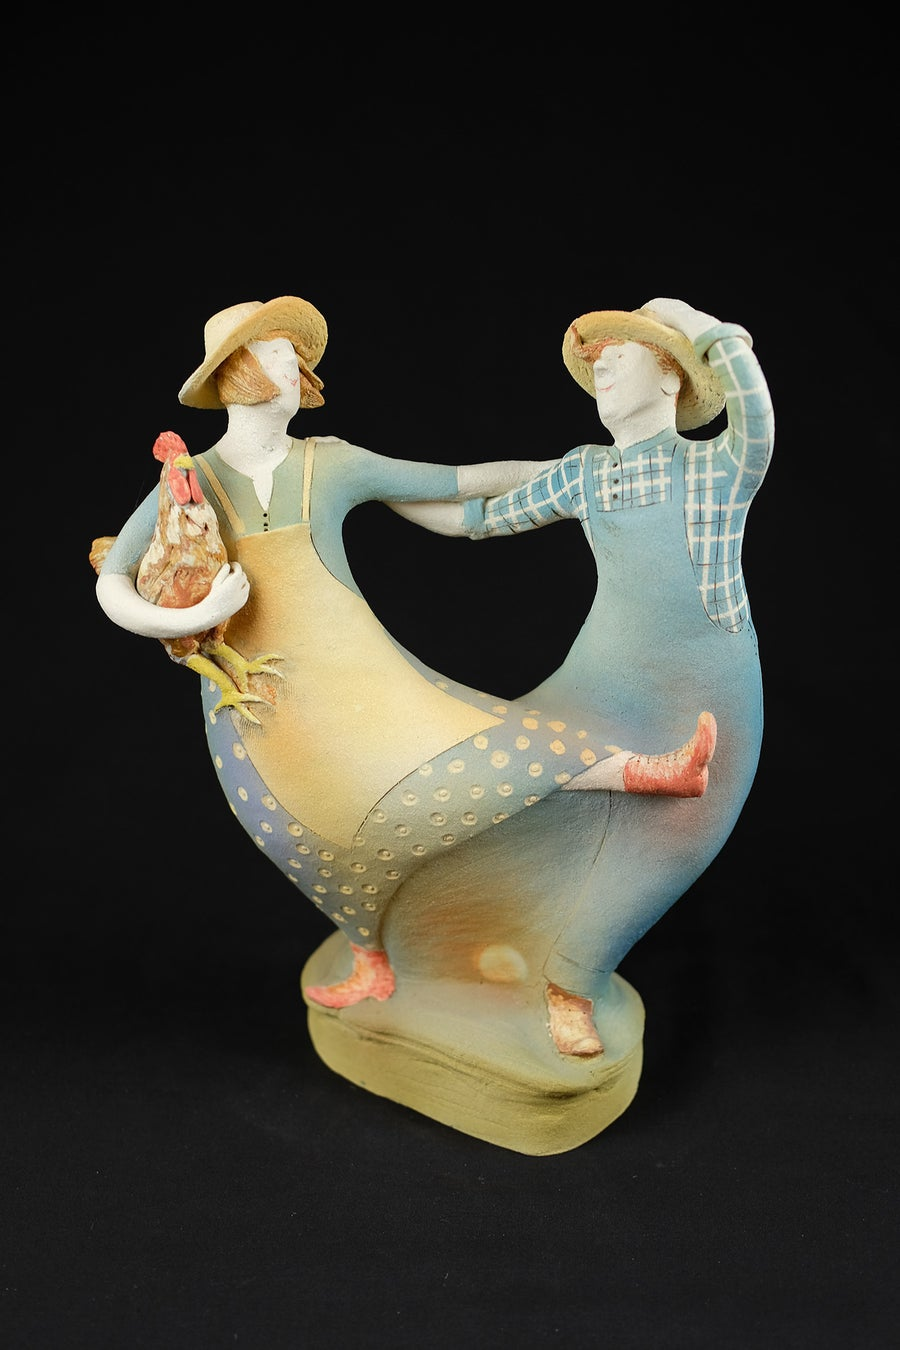 Image of JAN MAYLE 'DAY ON THE FARM' CERAMIC SCULPTURE